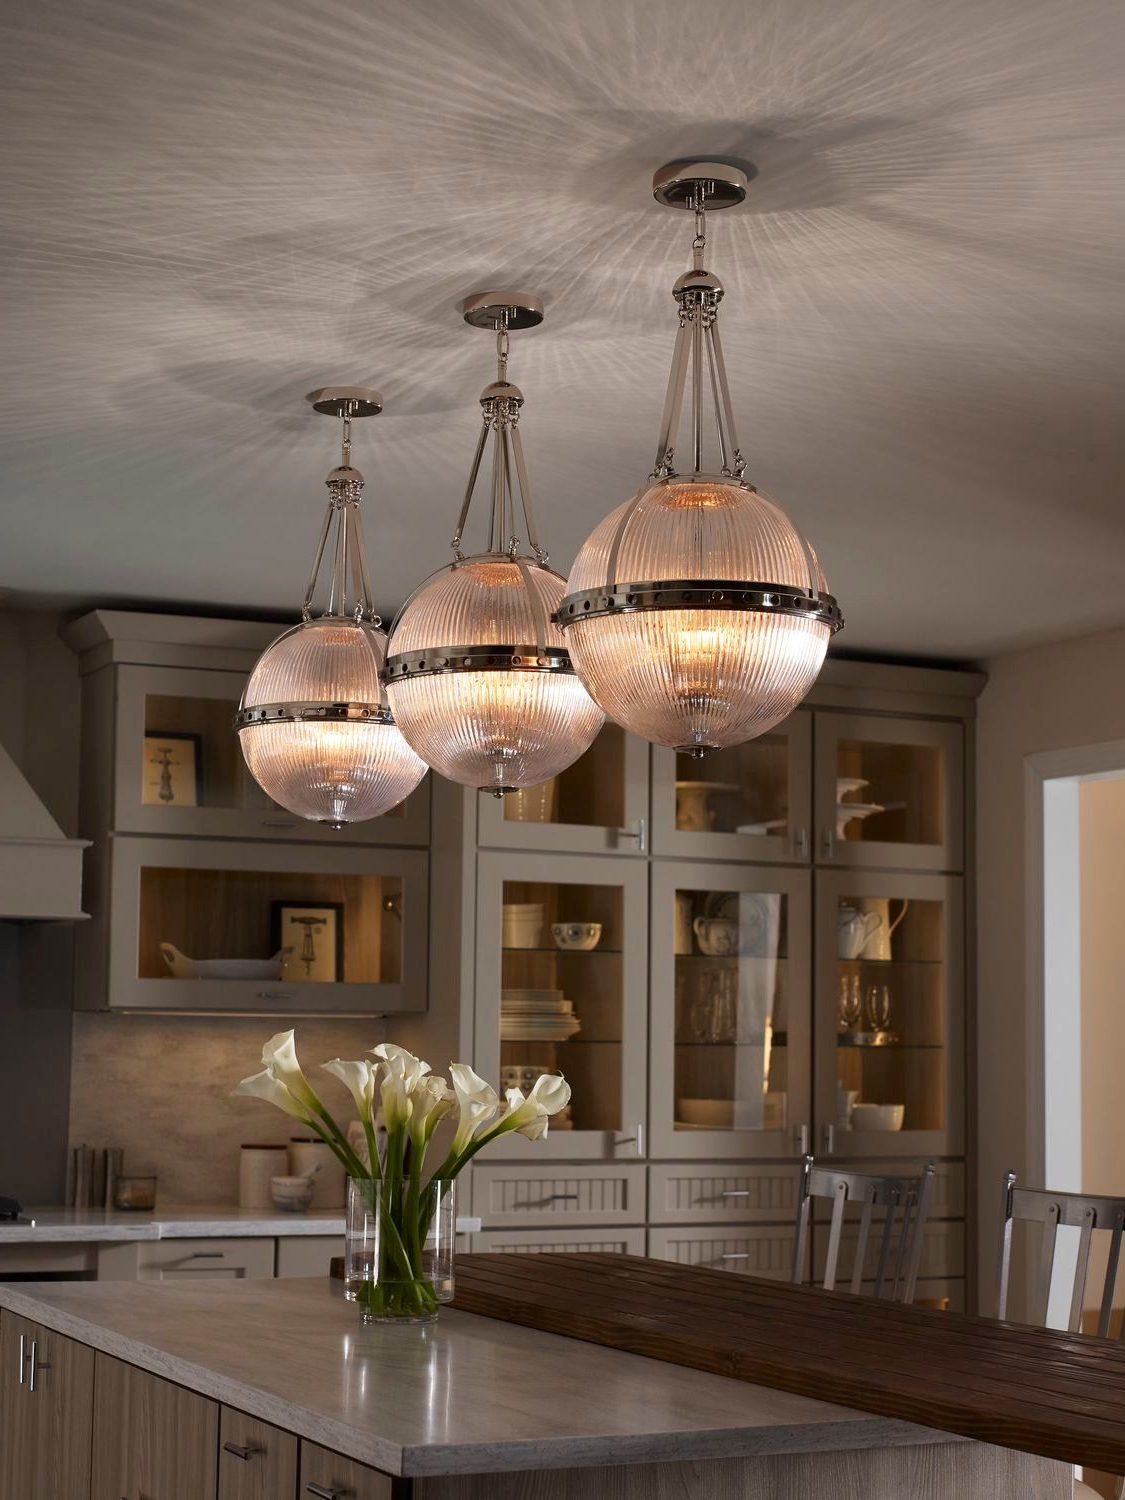 2020 La Barge 3-Light Globe Chandeliers inside Redefine The Style Of Your Room With Distinctive Orb Shaped